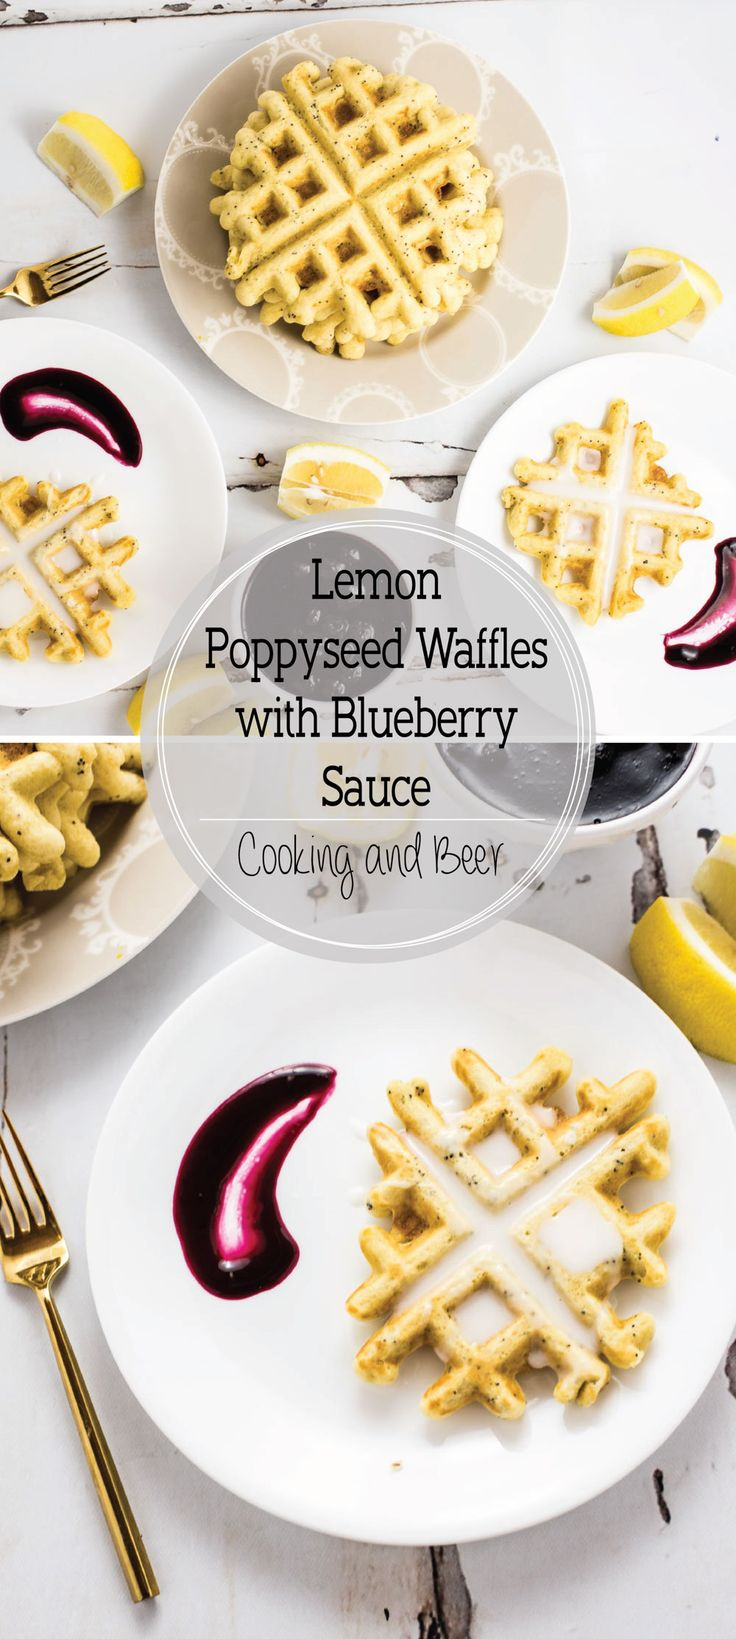 Start your day with these Lemon Poppy Seed Waffles with Blueberry Sauce! They will be a crowd pleaser at any breakfast or brunch gathering!